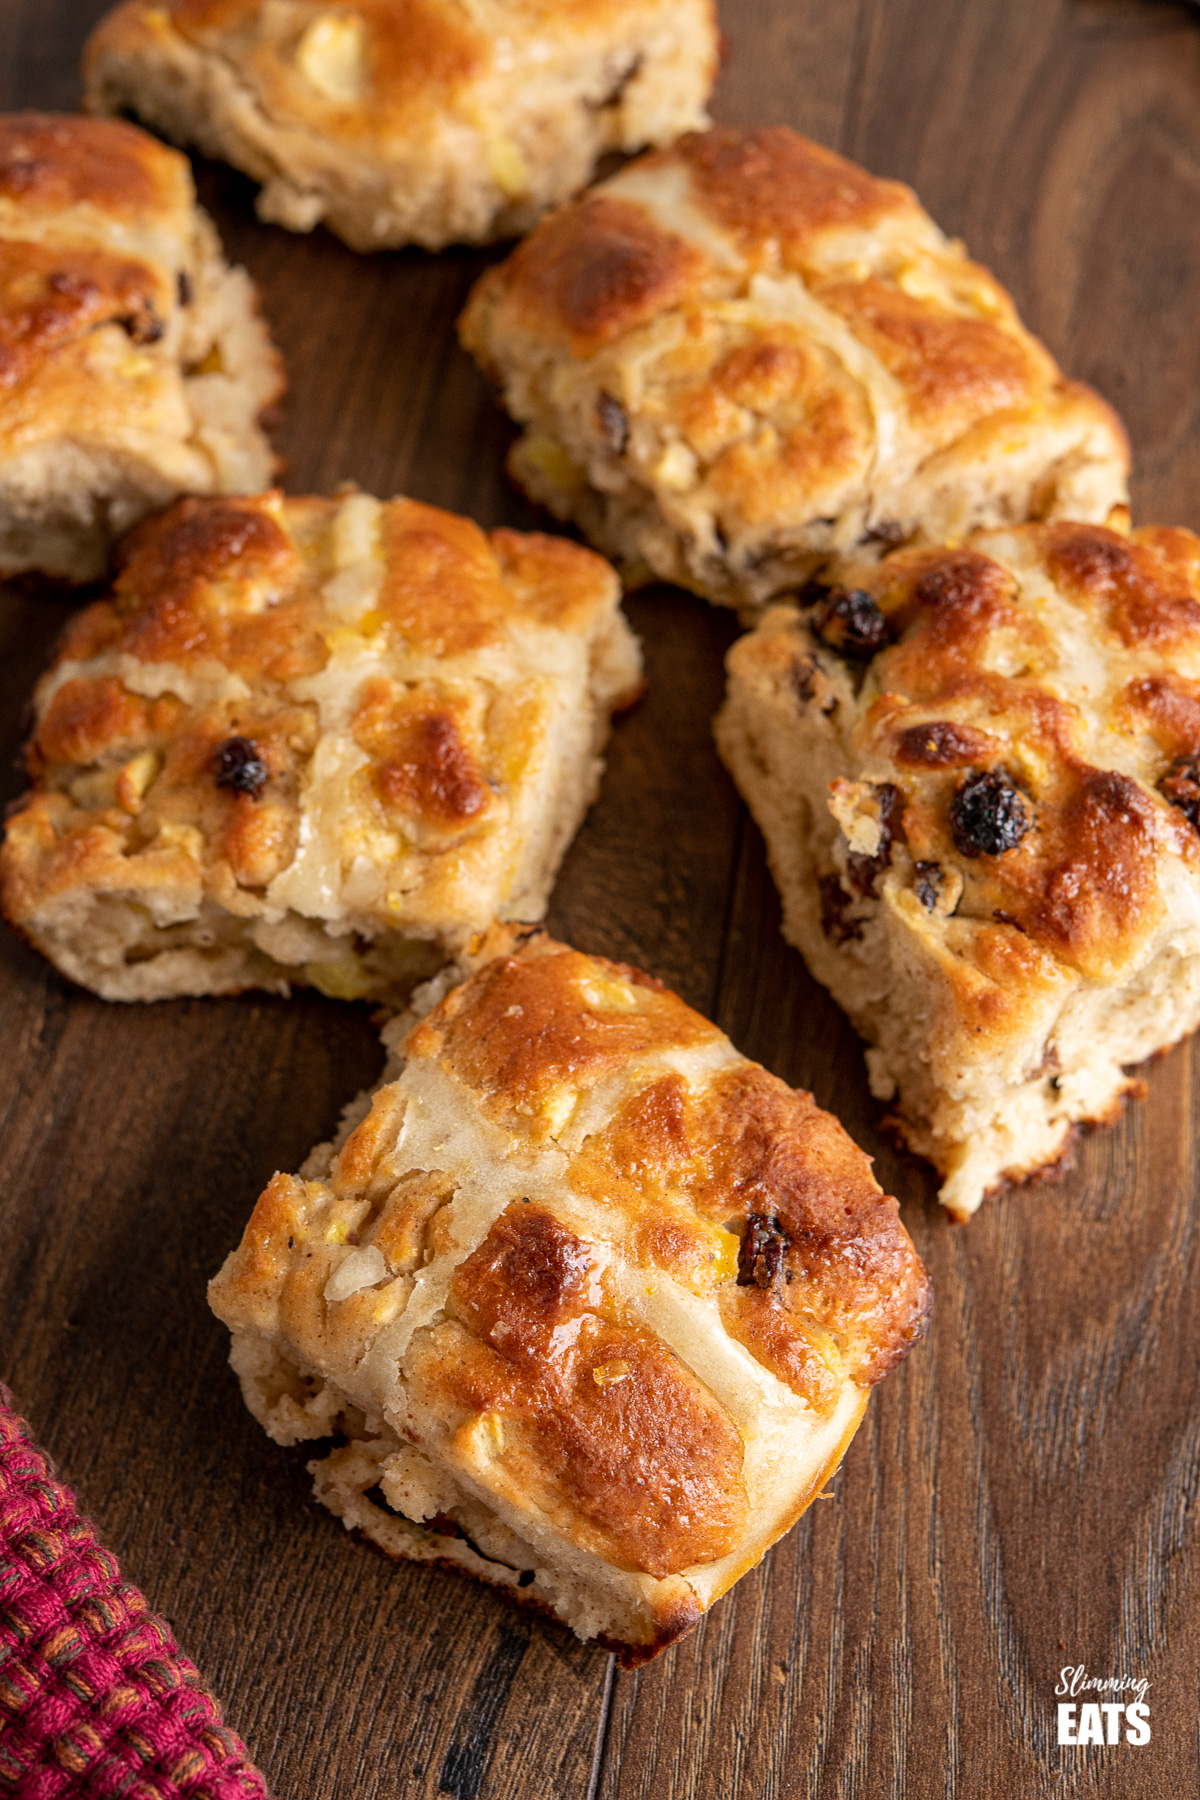 scattered hot cross buns on wooden table